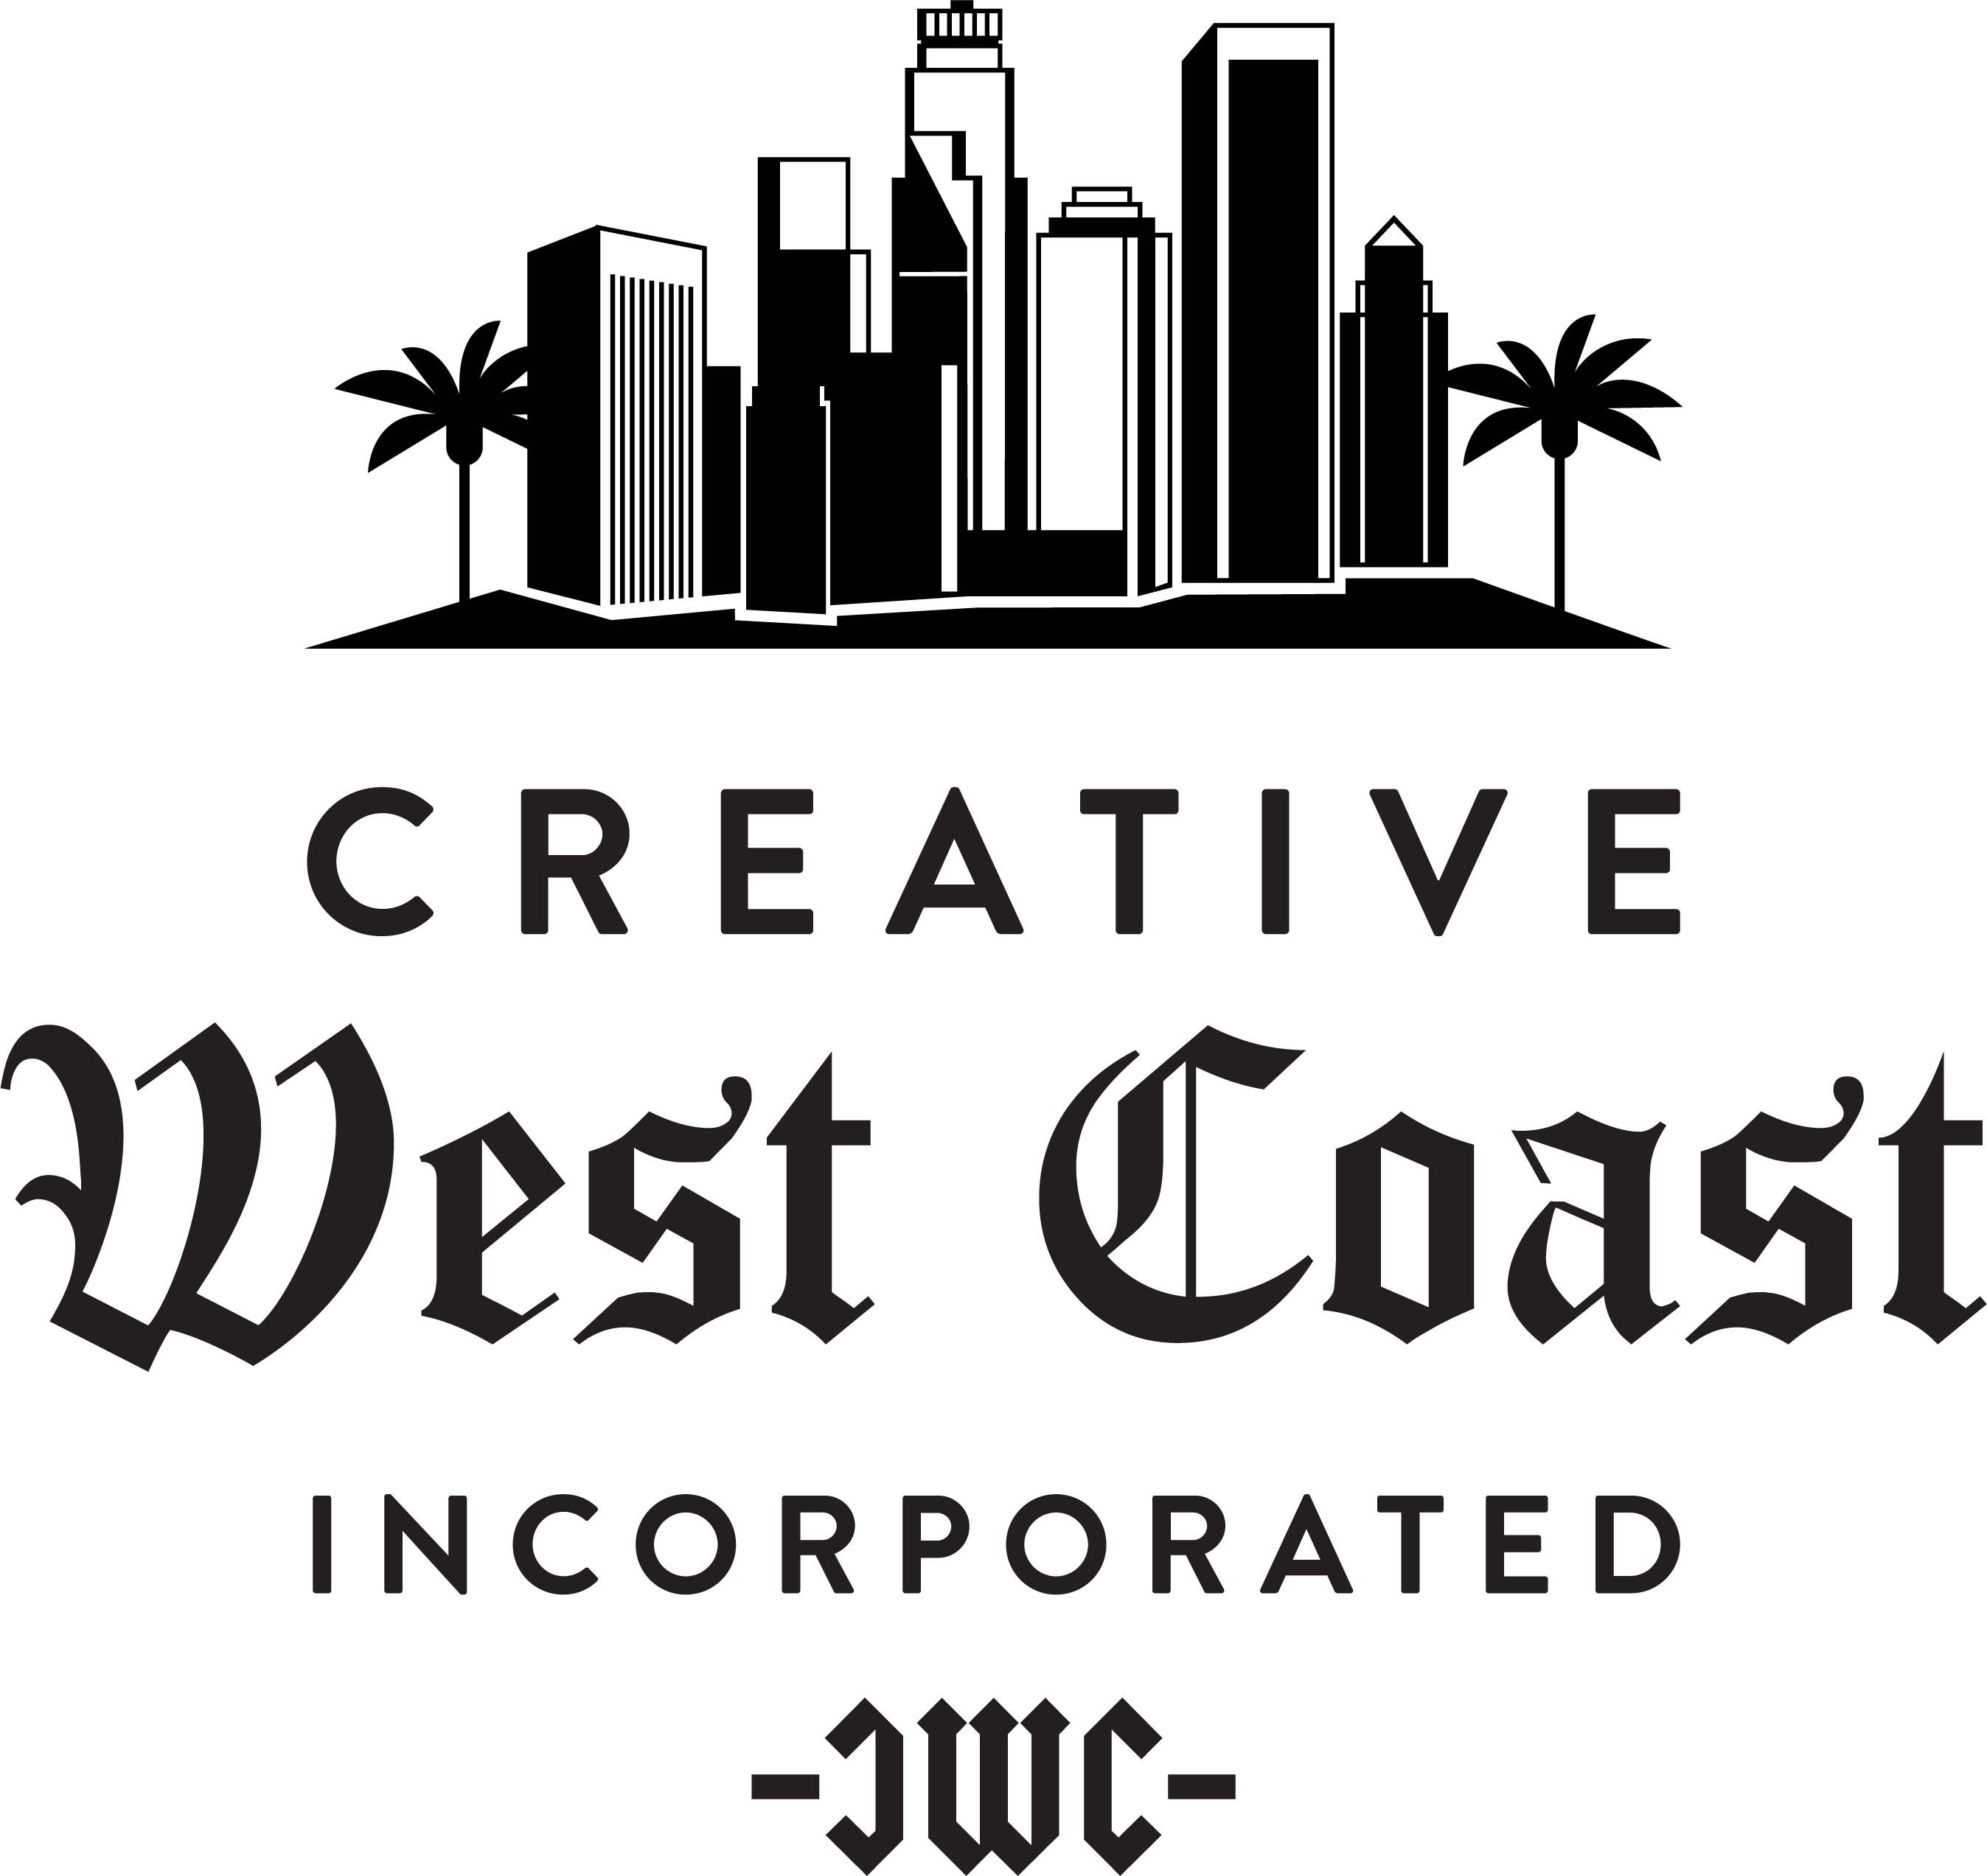 New Tech Co-op needs logo/brand with Los Angeles/West Coast style!